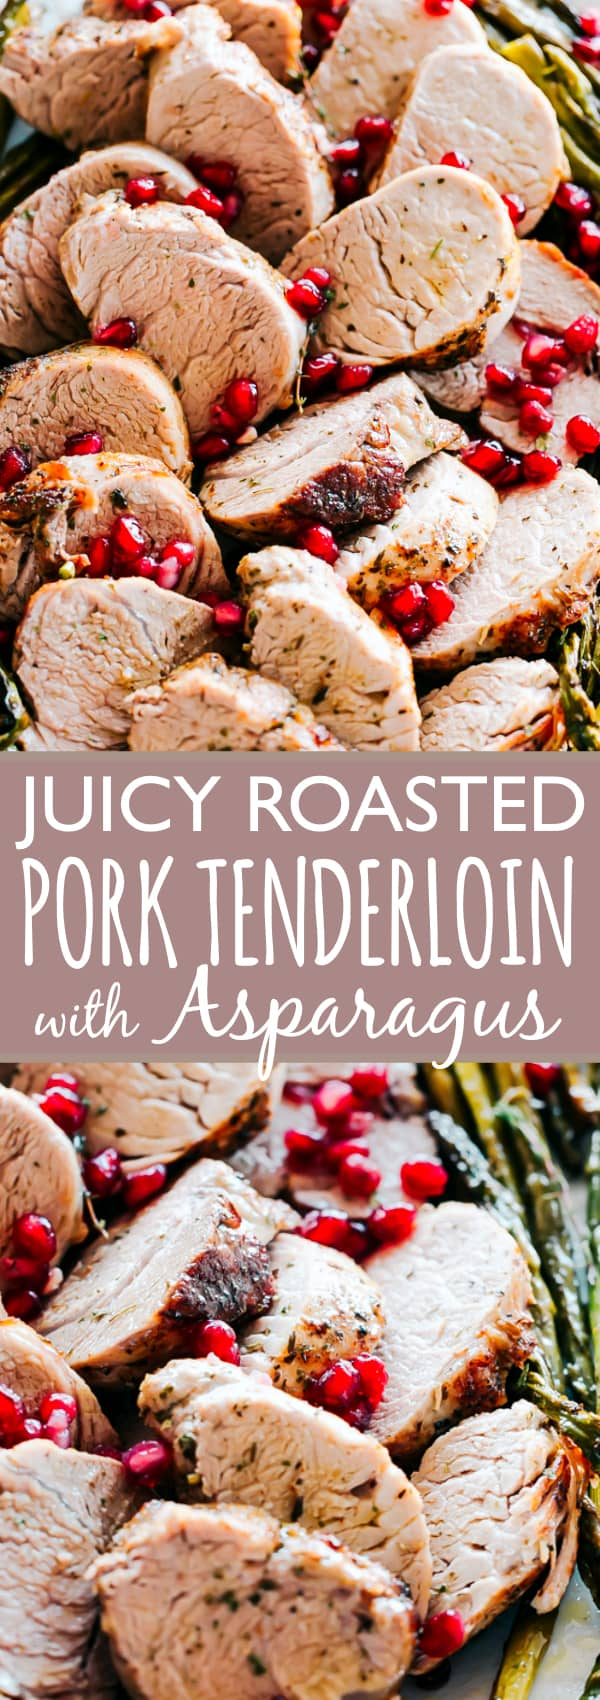 One Pan Roasted Pork Tenderloin with Asparagus - The ease of one pan and the delicious flavors of pork paired with asparagus make this recipe a wonderful meal that results in an incredible, tender and juicy dinner in just 30 minutes. An effortless meal perfect for busy weeknights, but also fancy enough for a Holiday dinner. #pork #porktenderloin #holidays #christmas #christmasdinner #asparagus #onepanmeal #dinnerrecipes